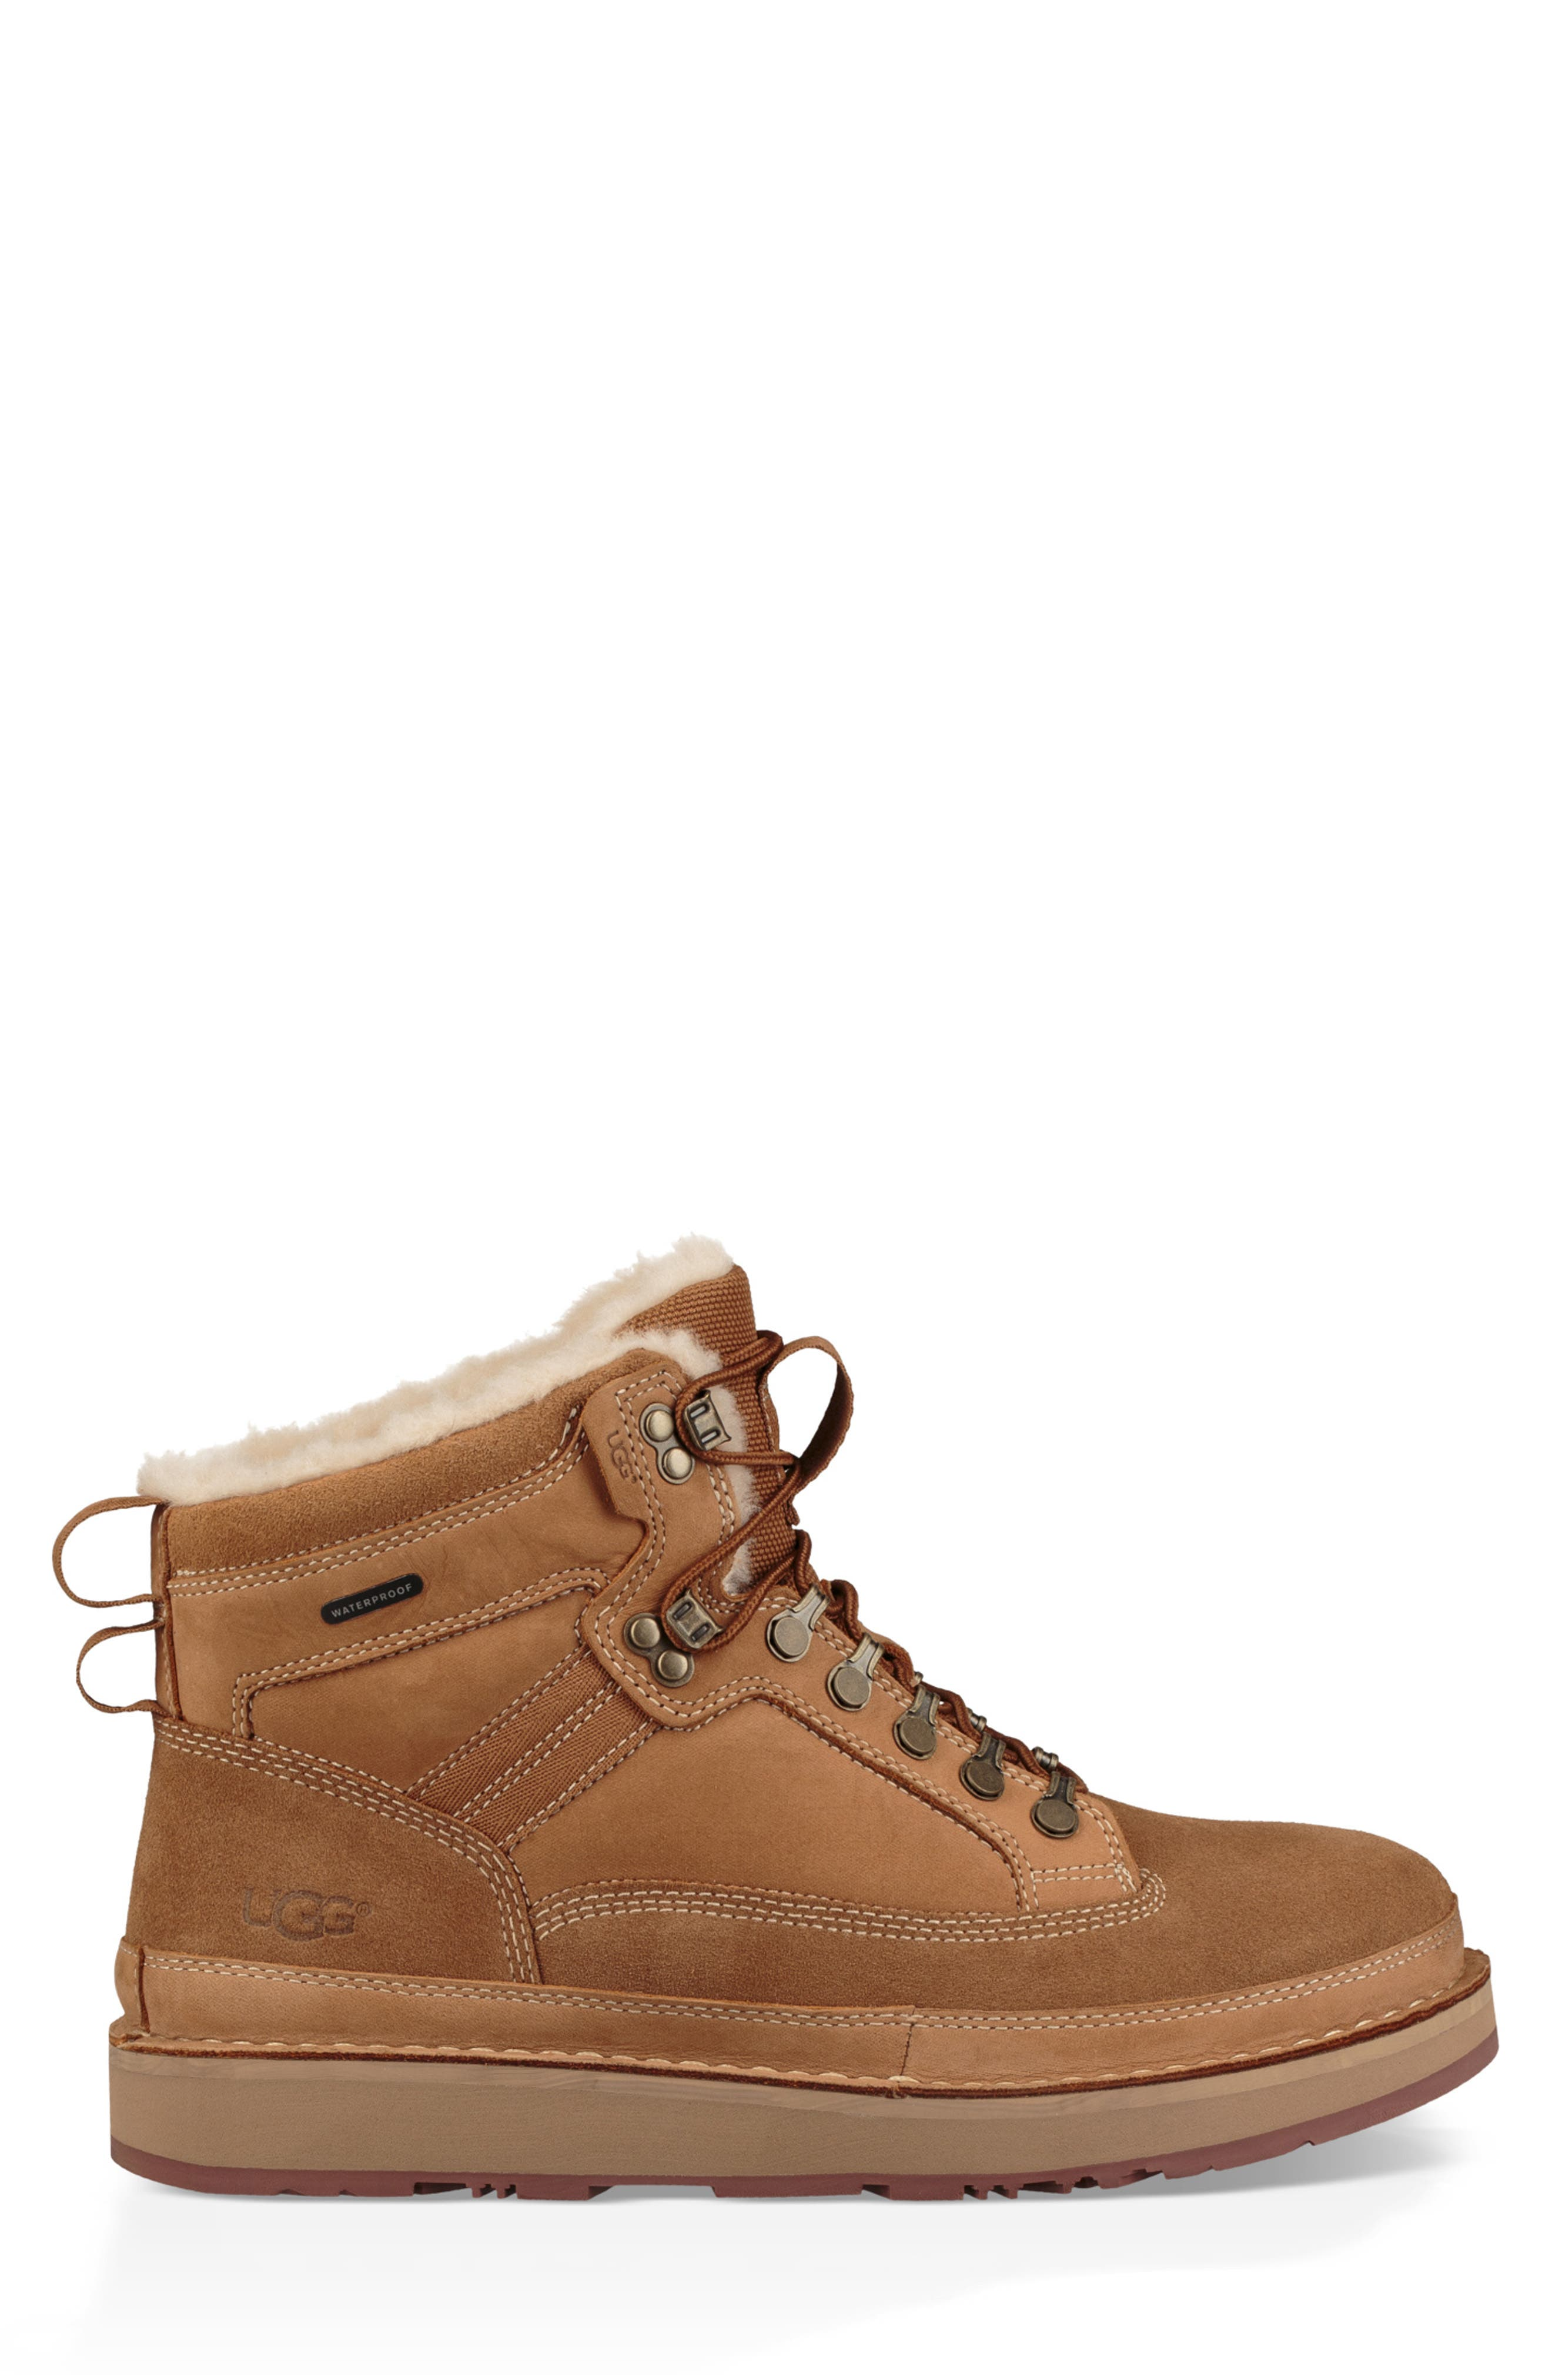 Avalanche Hiker Waterproof Boot,                             Alternate thumbnail 3, color,                             CHESTNUT